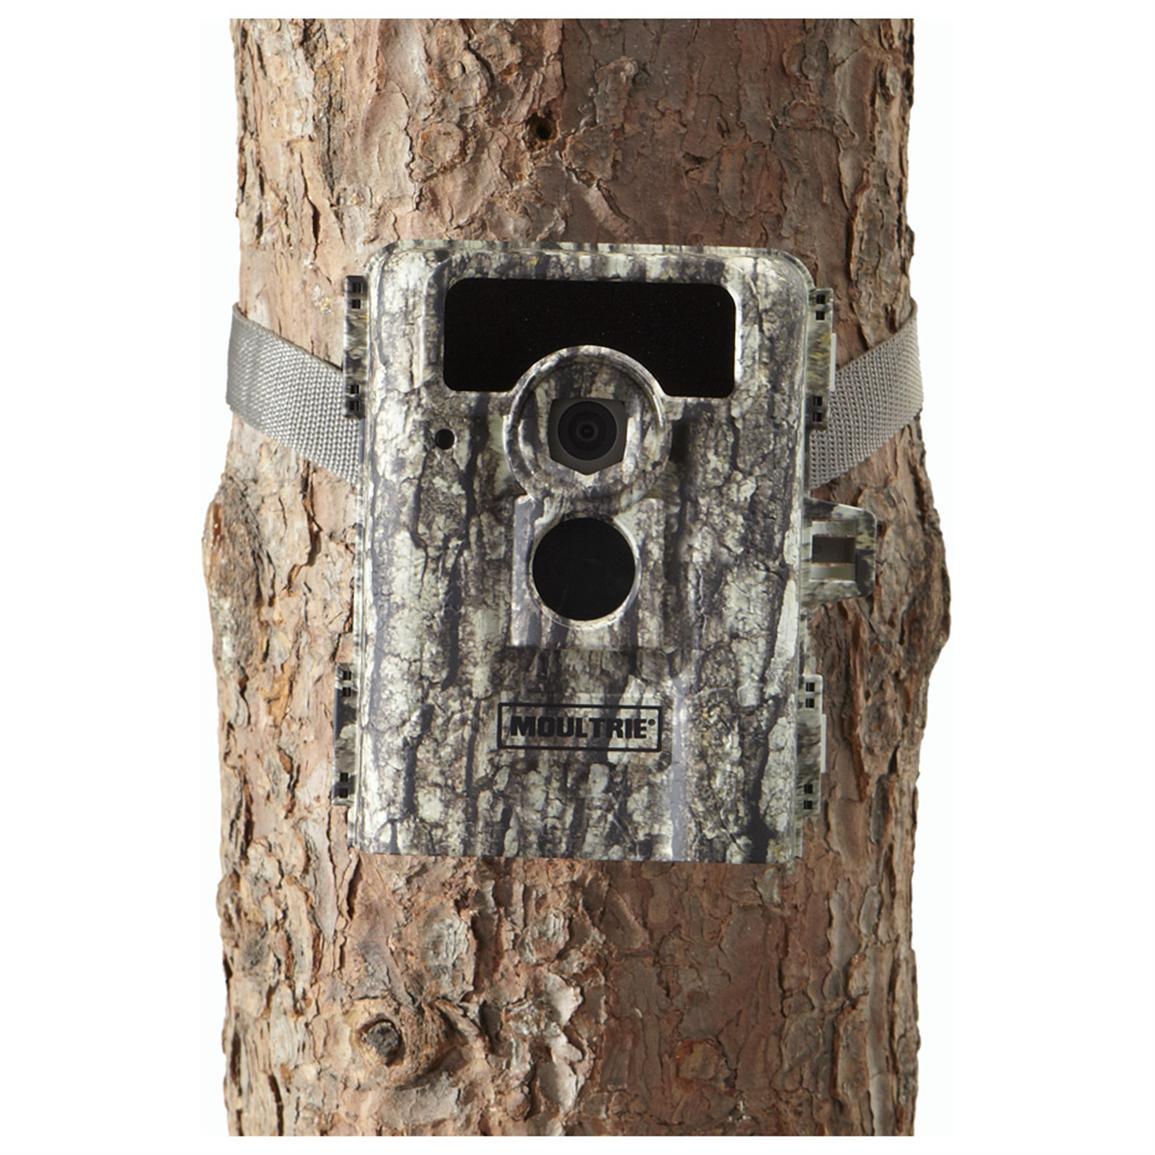 Moultrie® Game Spy D-555i Wide Angle Infrared Game Camera